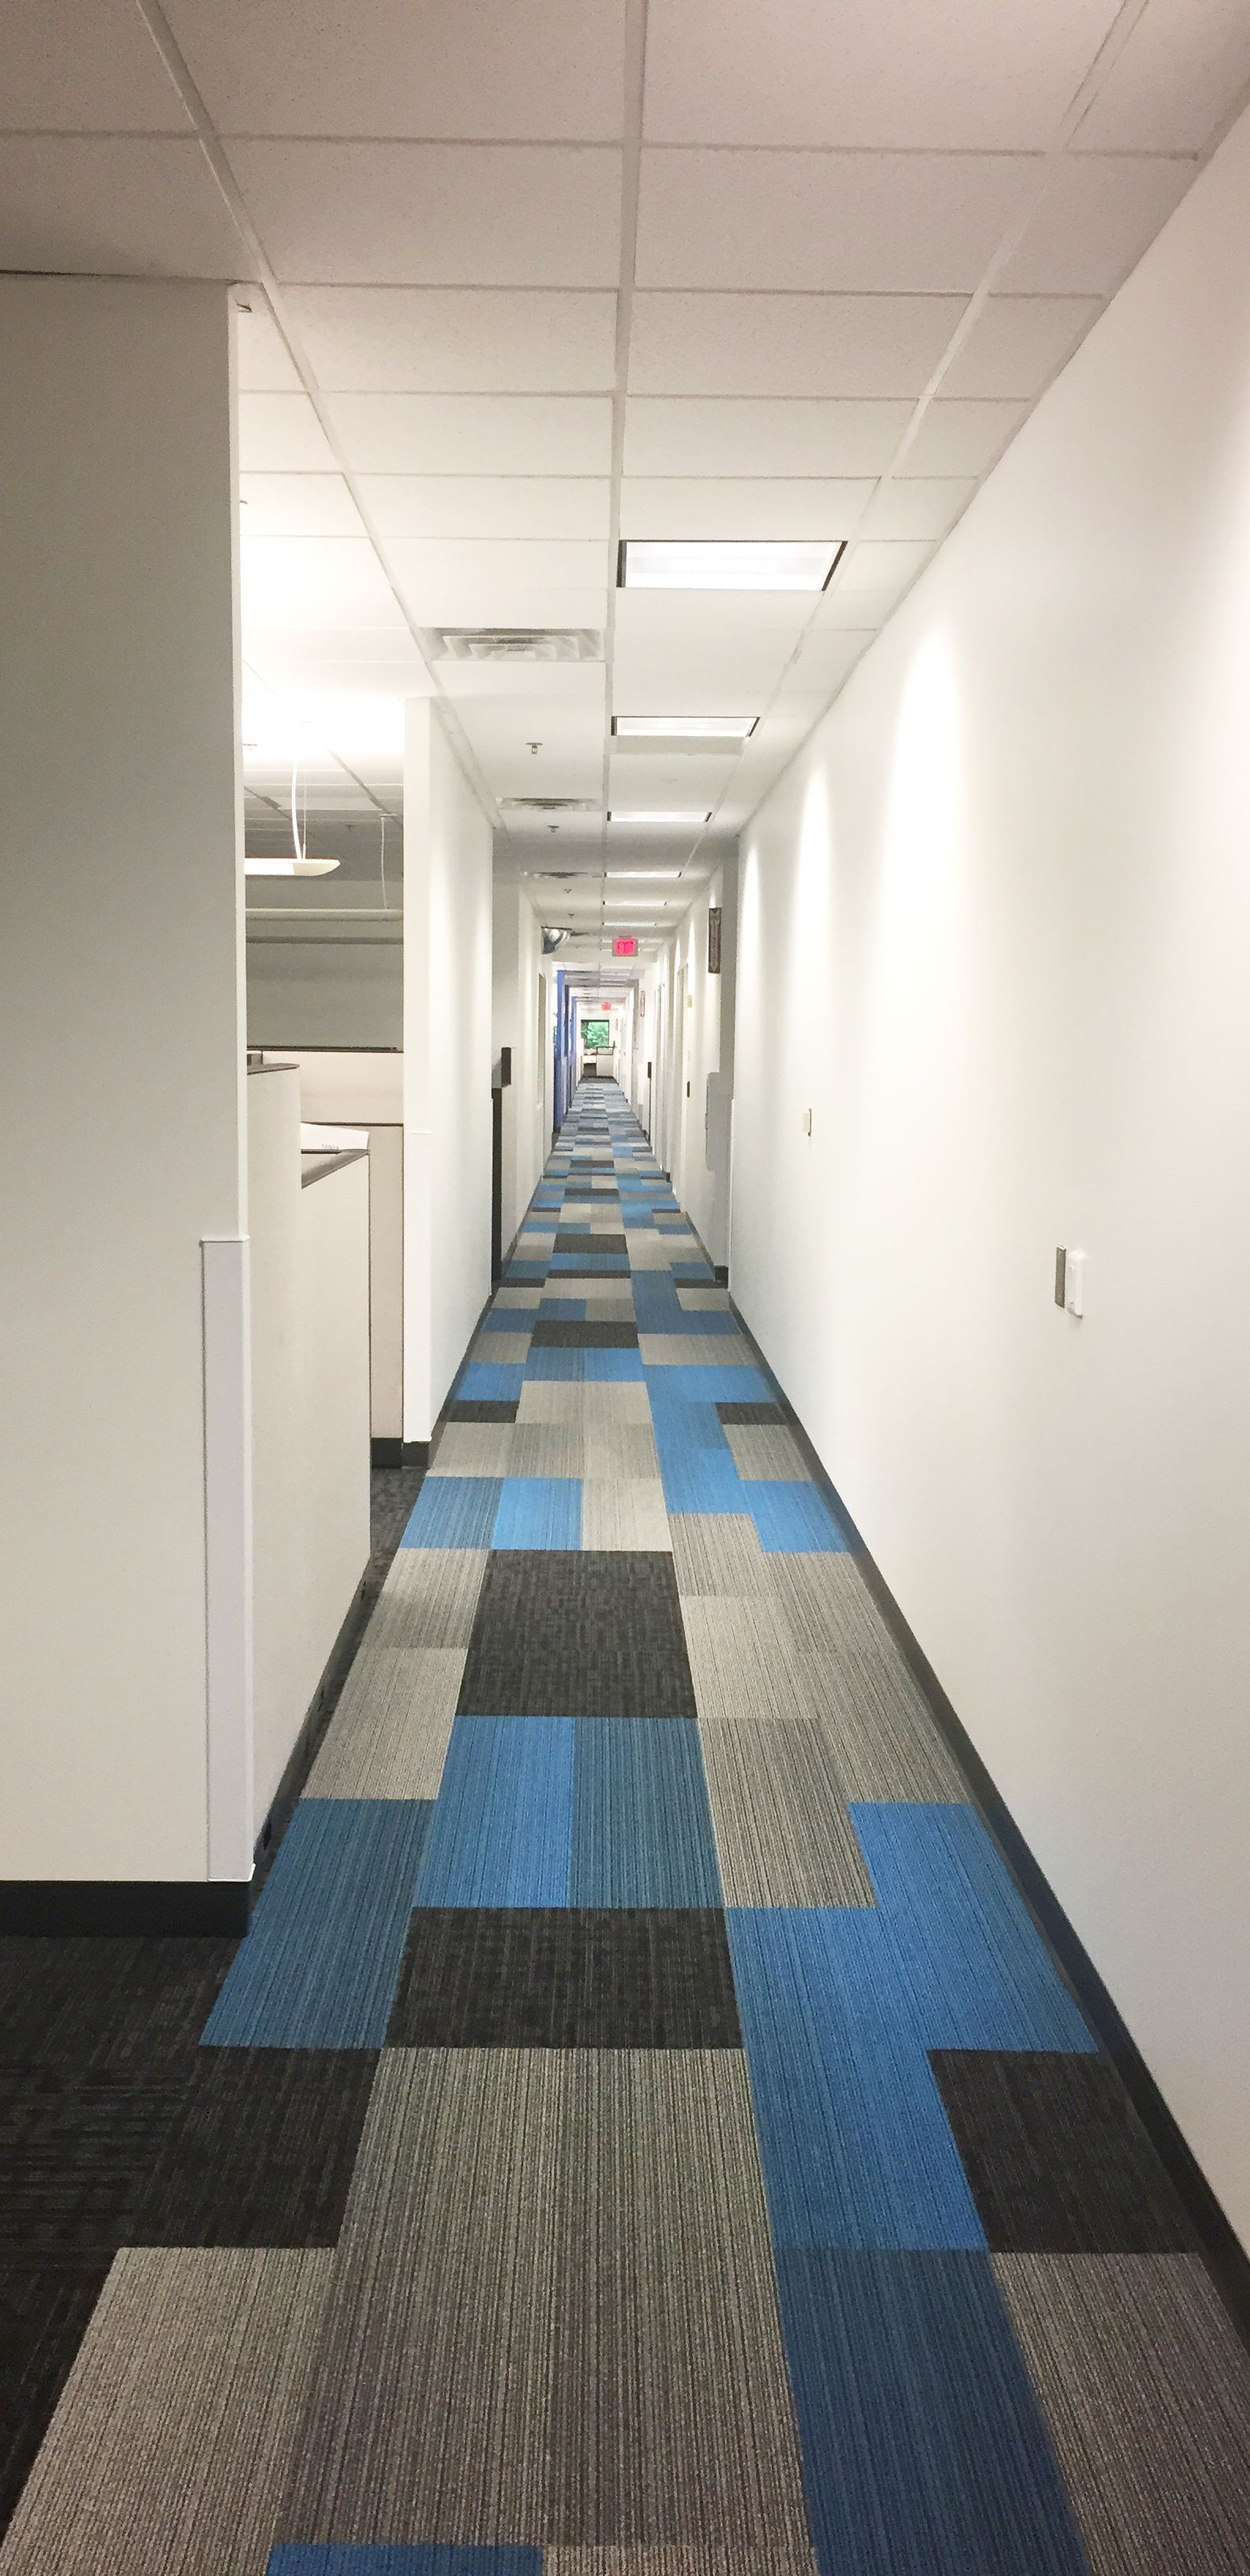 Carpet Installation In Commercial Office Hallway Designed By